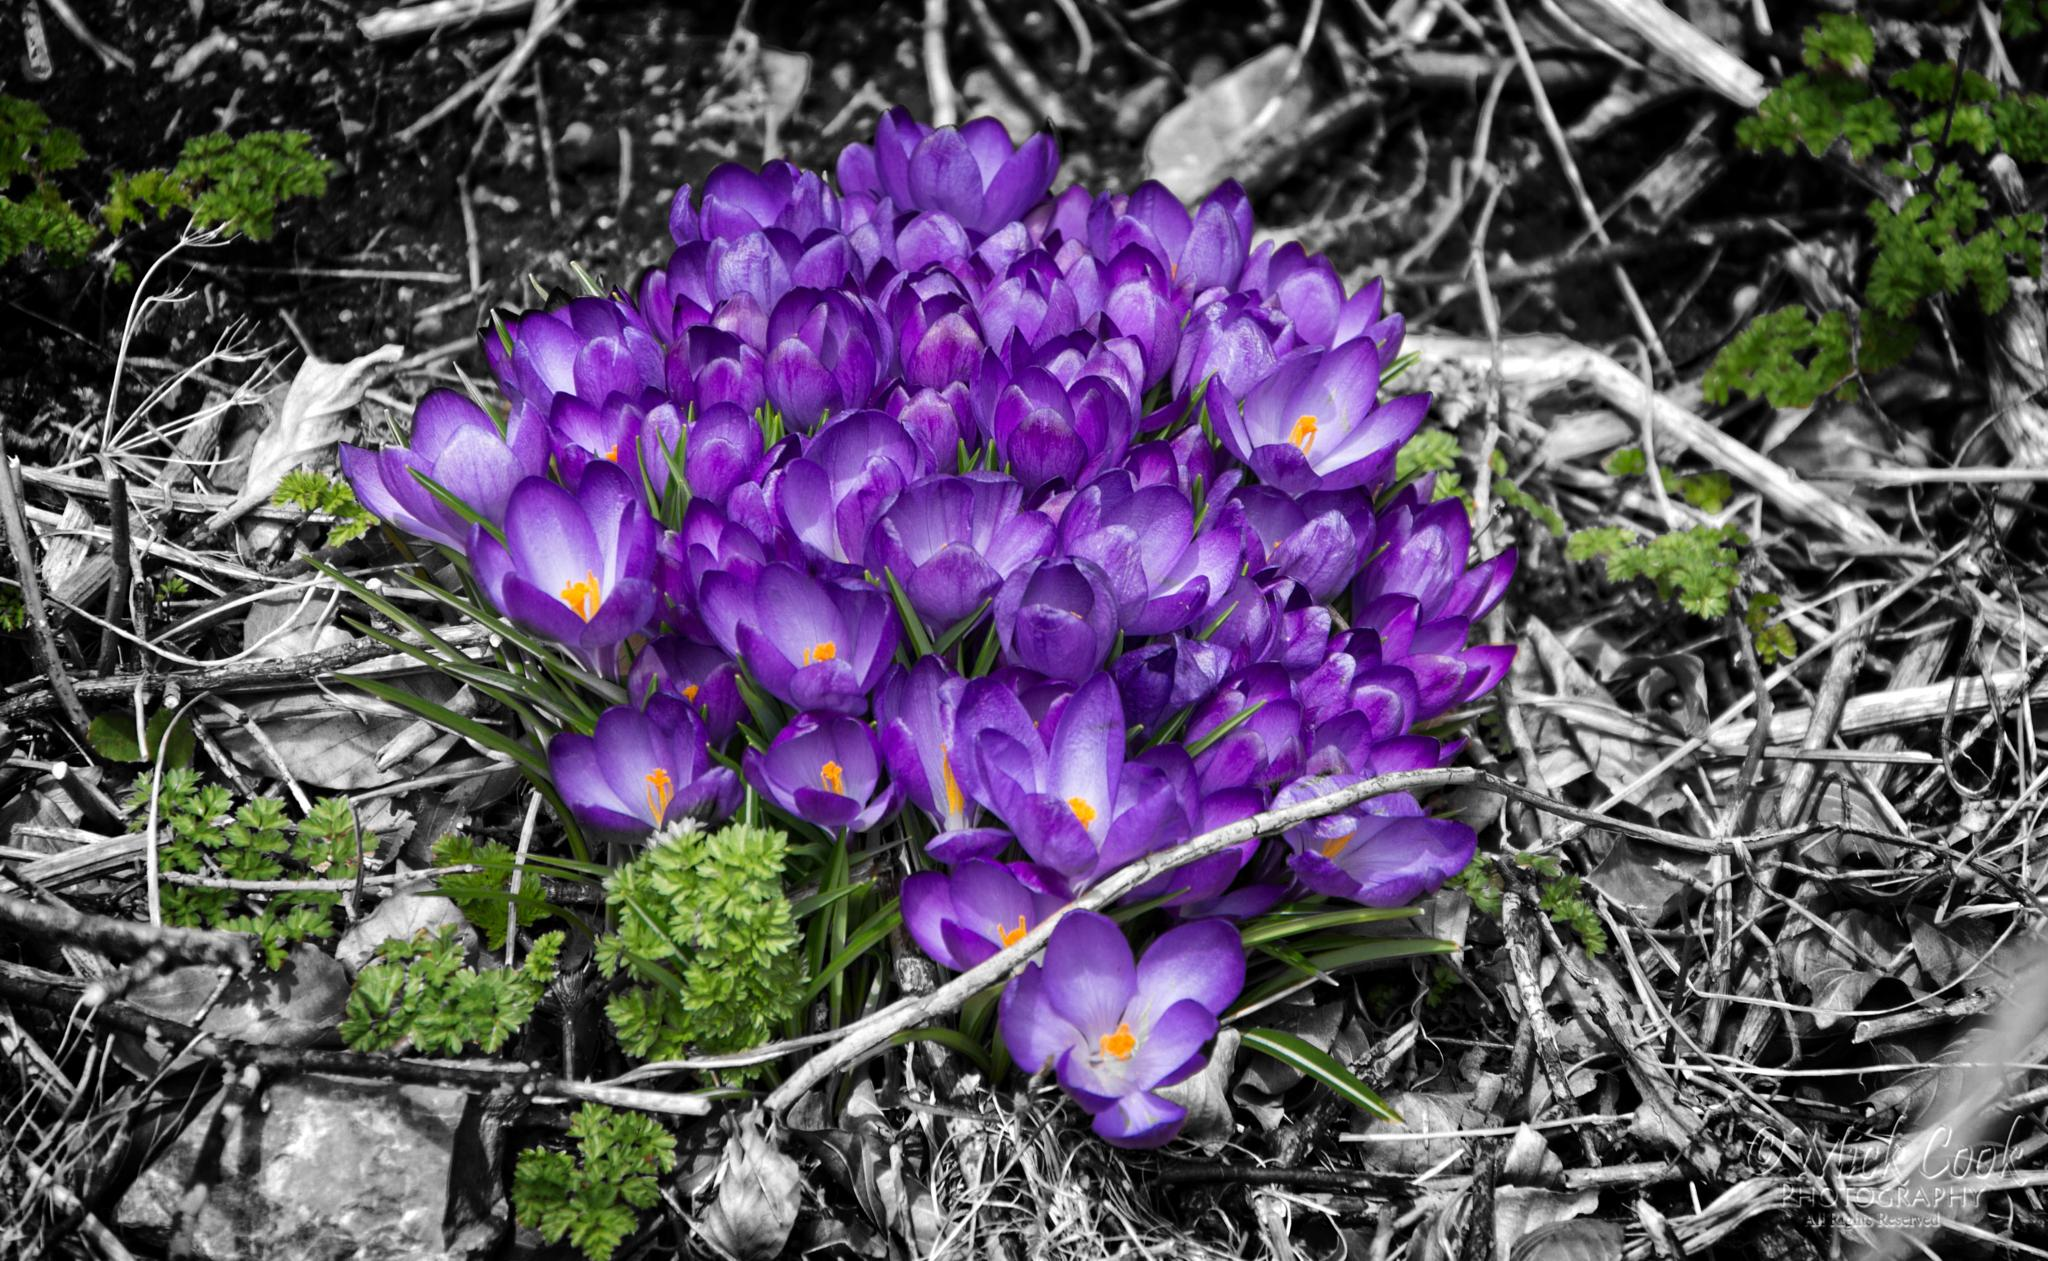 It's a Crocus Life by DooDaa66